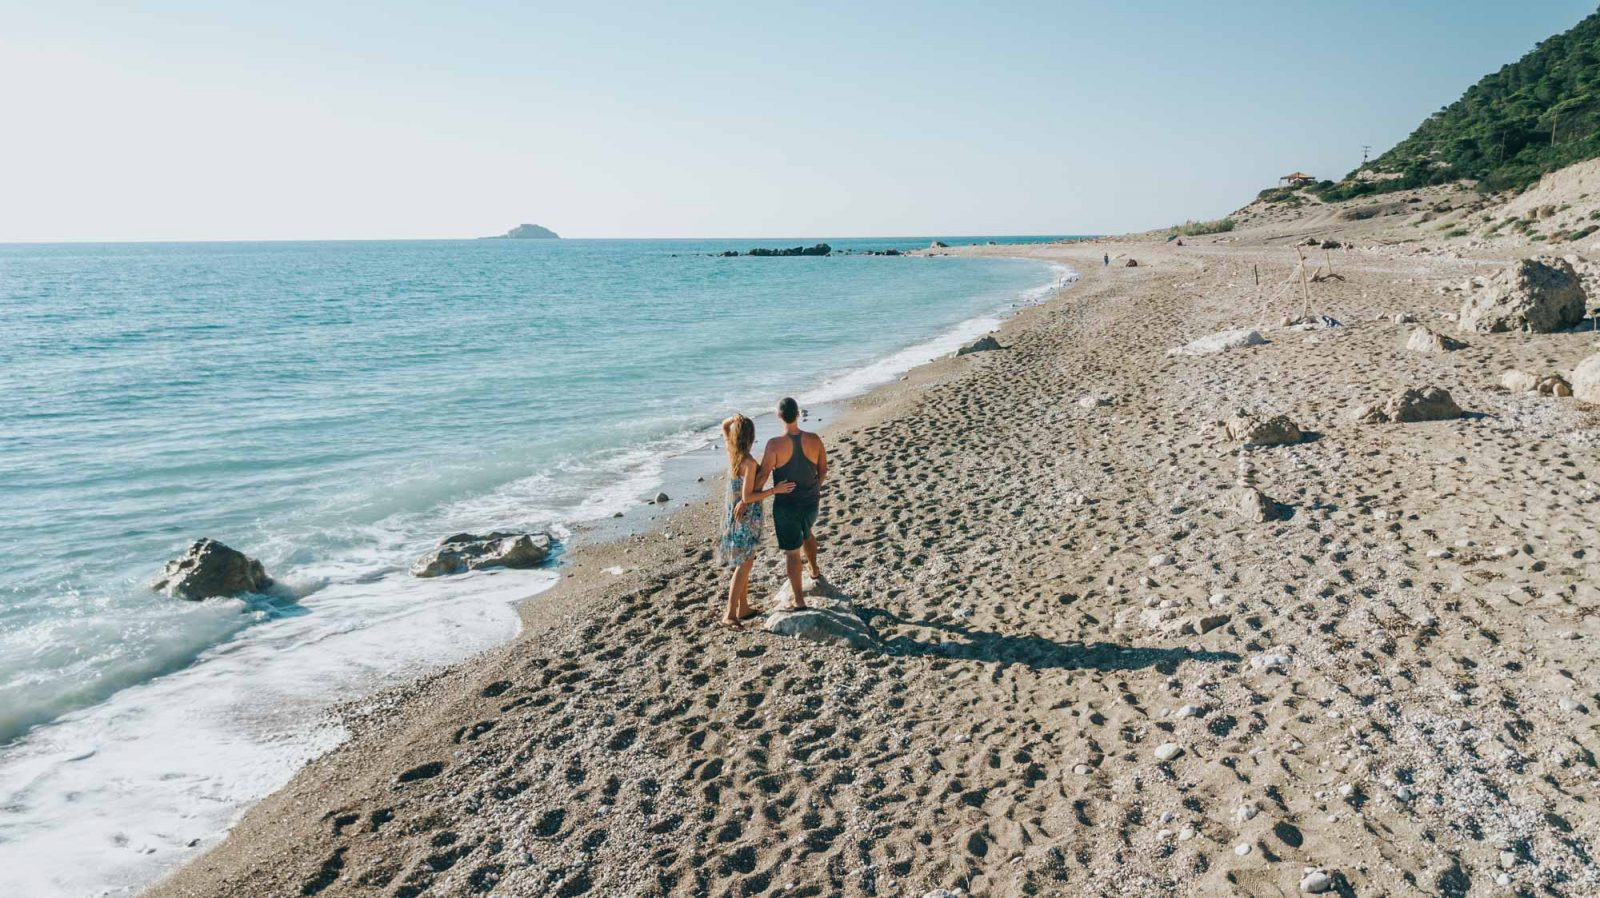 Gialos Beach is one of the best beaches in Lefkada